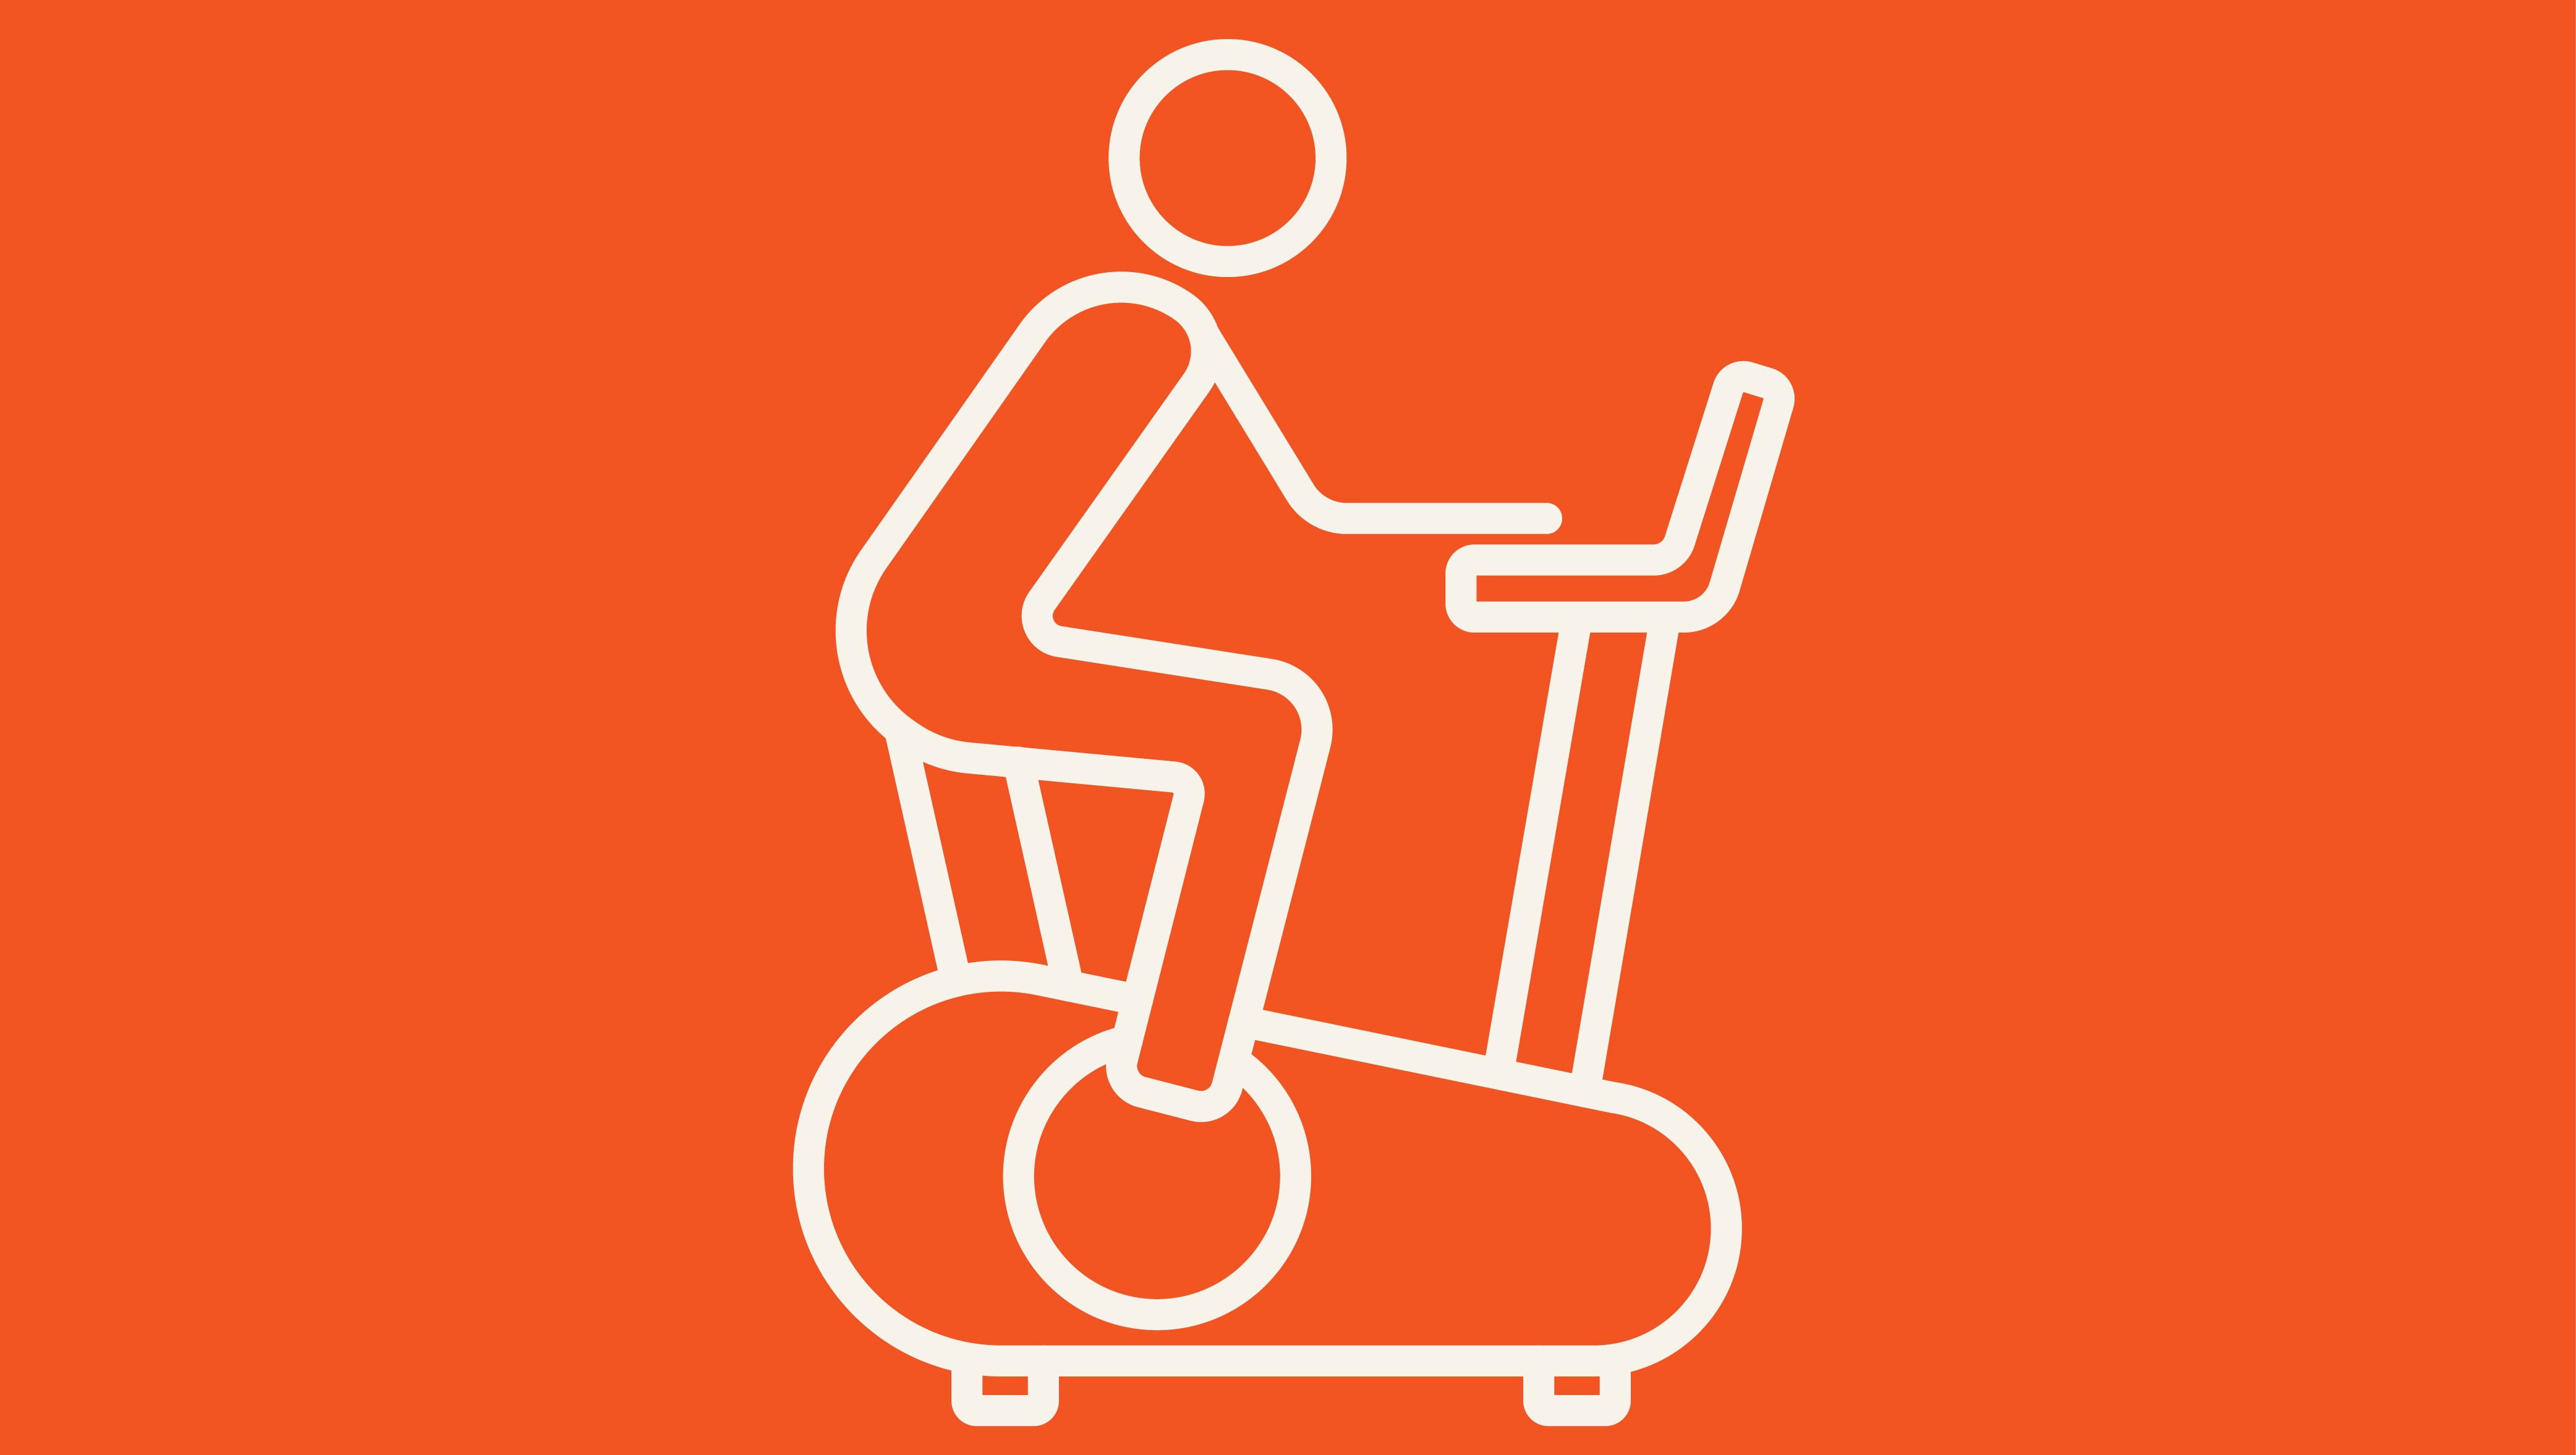 Man training on exercise bike line icon.